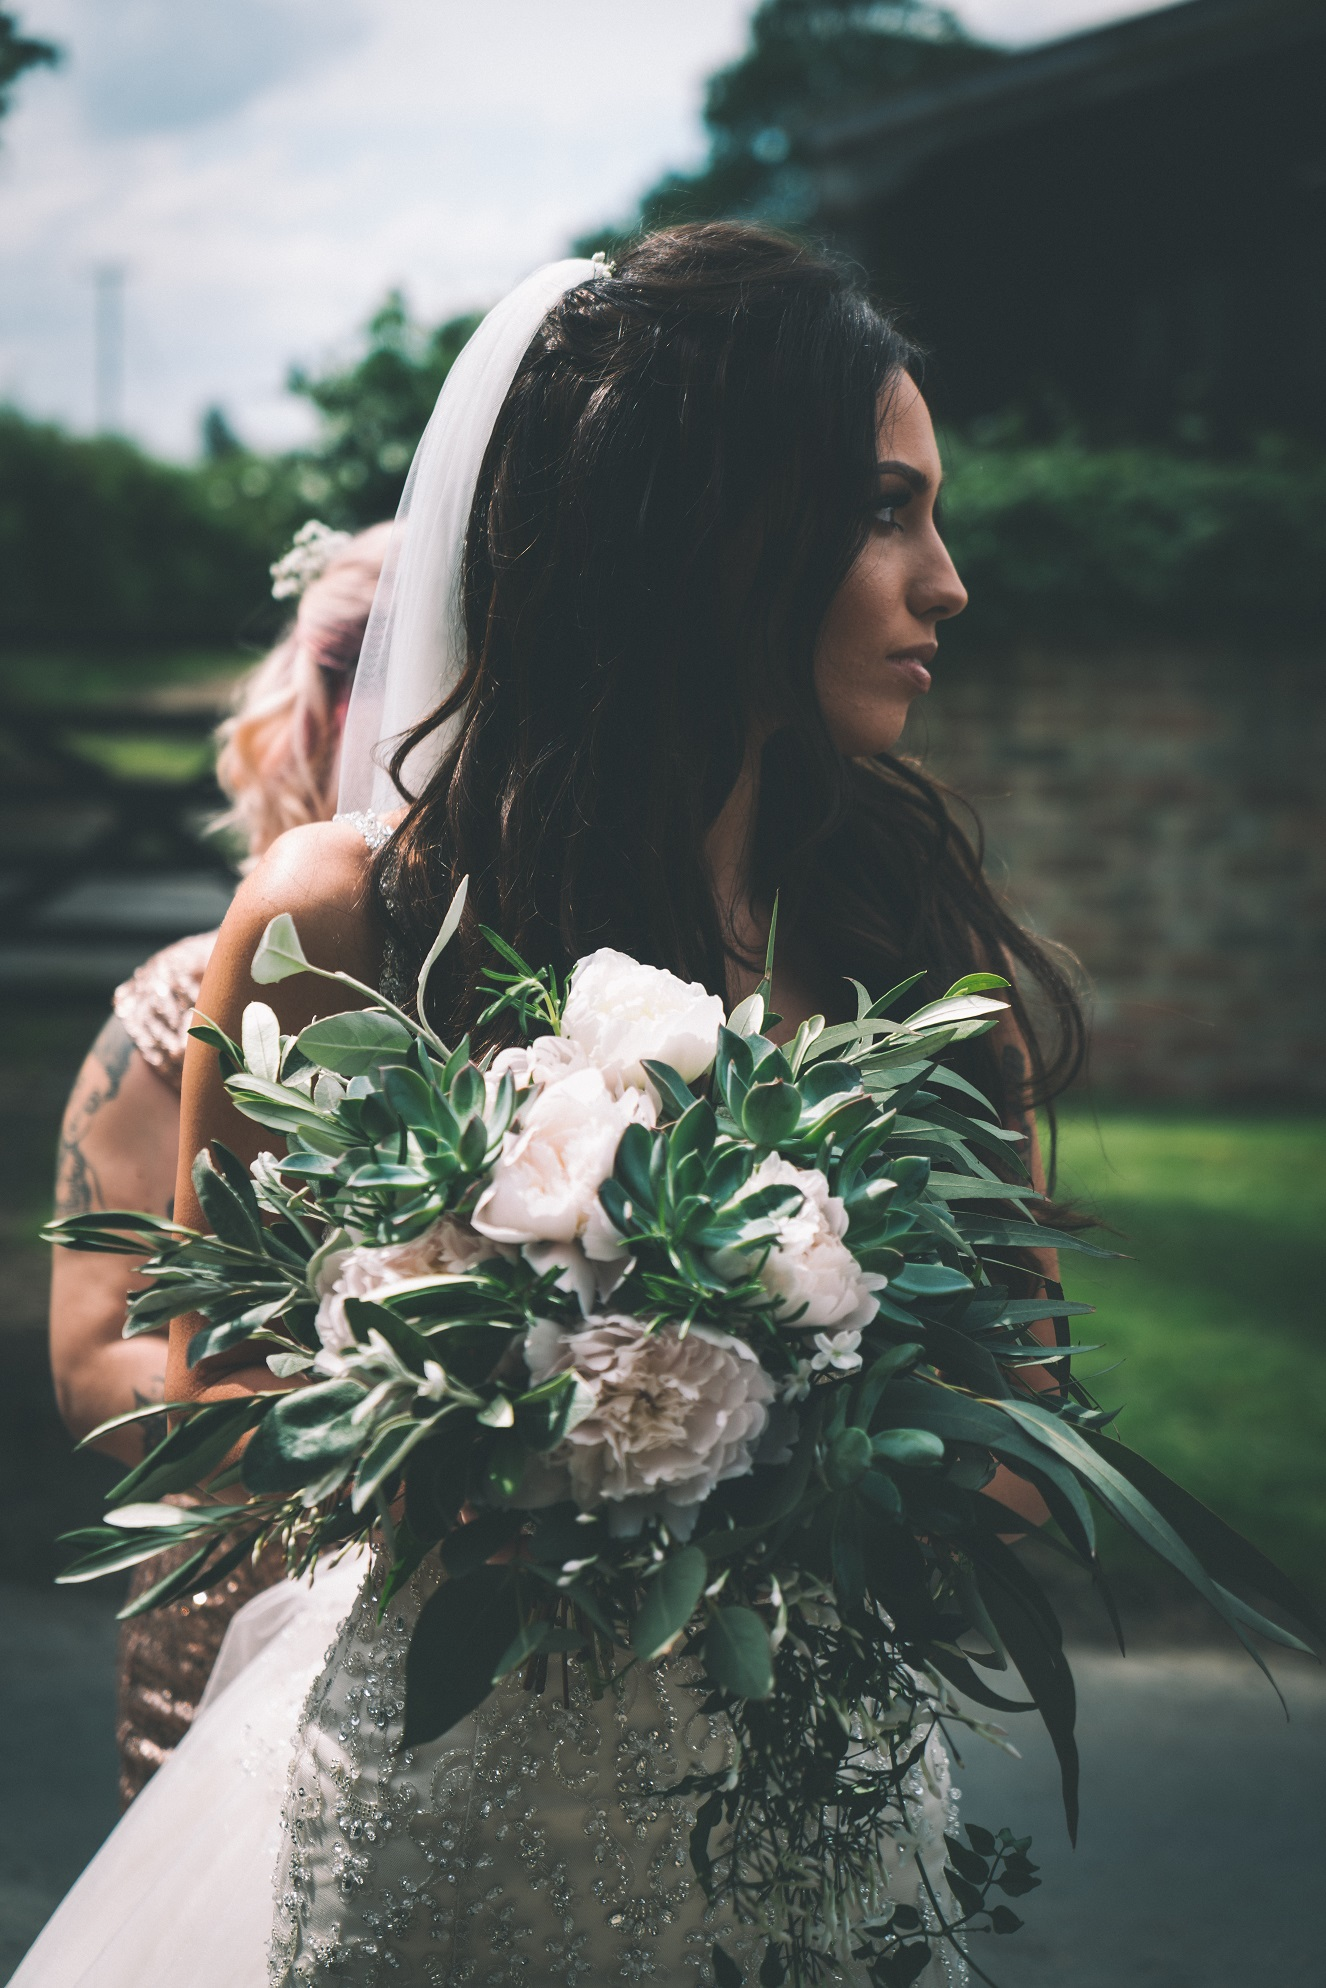 Bridal Bouquet by Kate Mell Flowers at The Normans. Photo by www.sevenpoints.uk